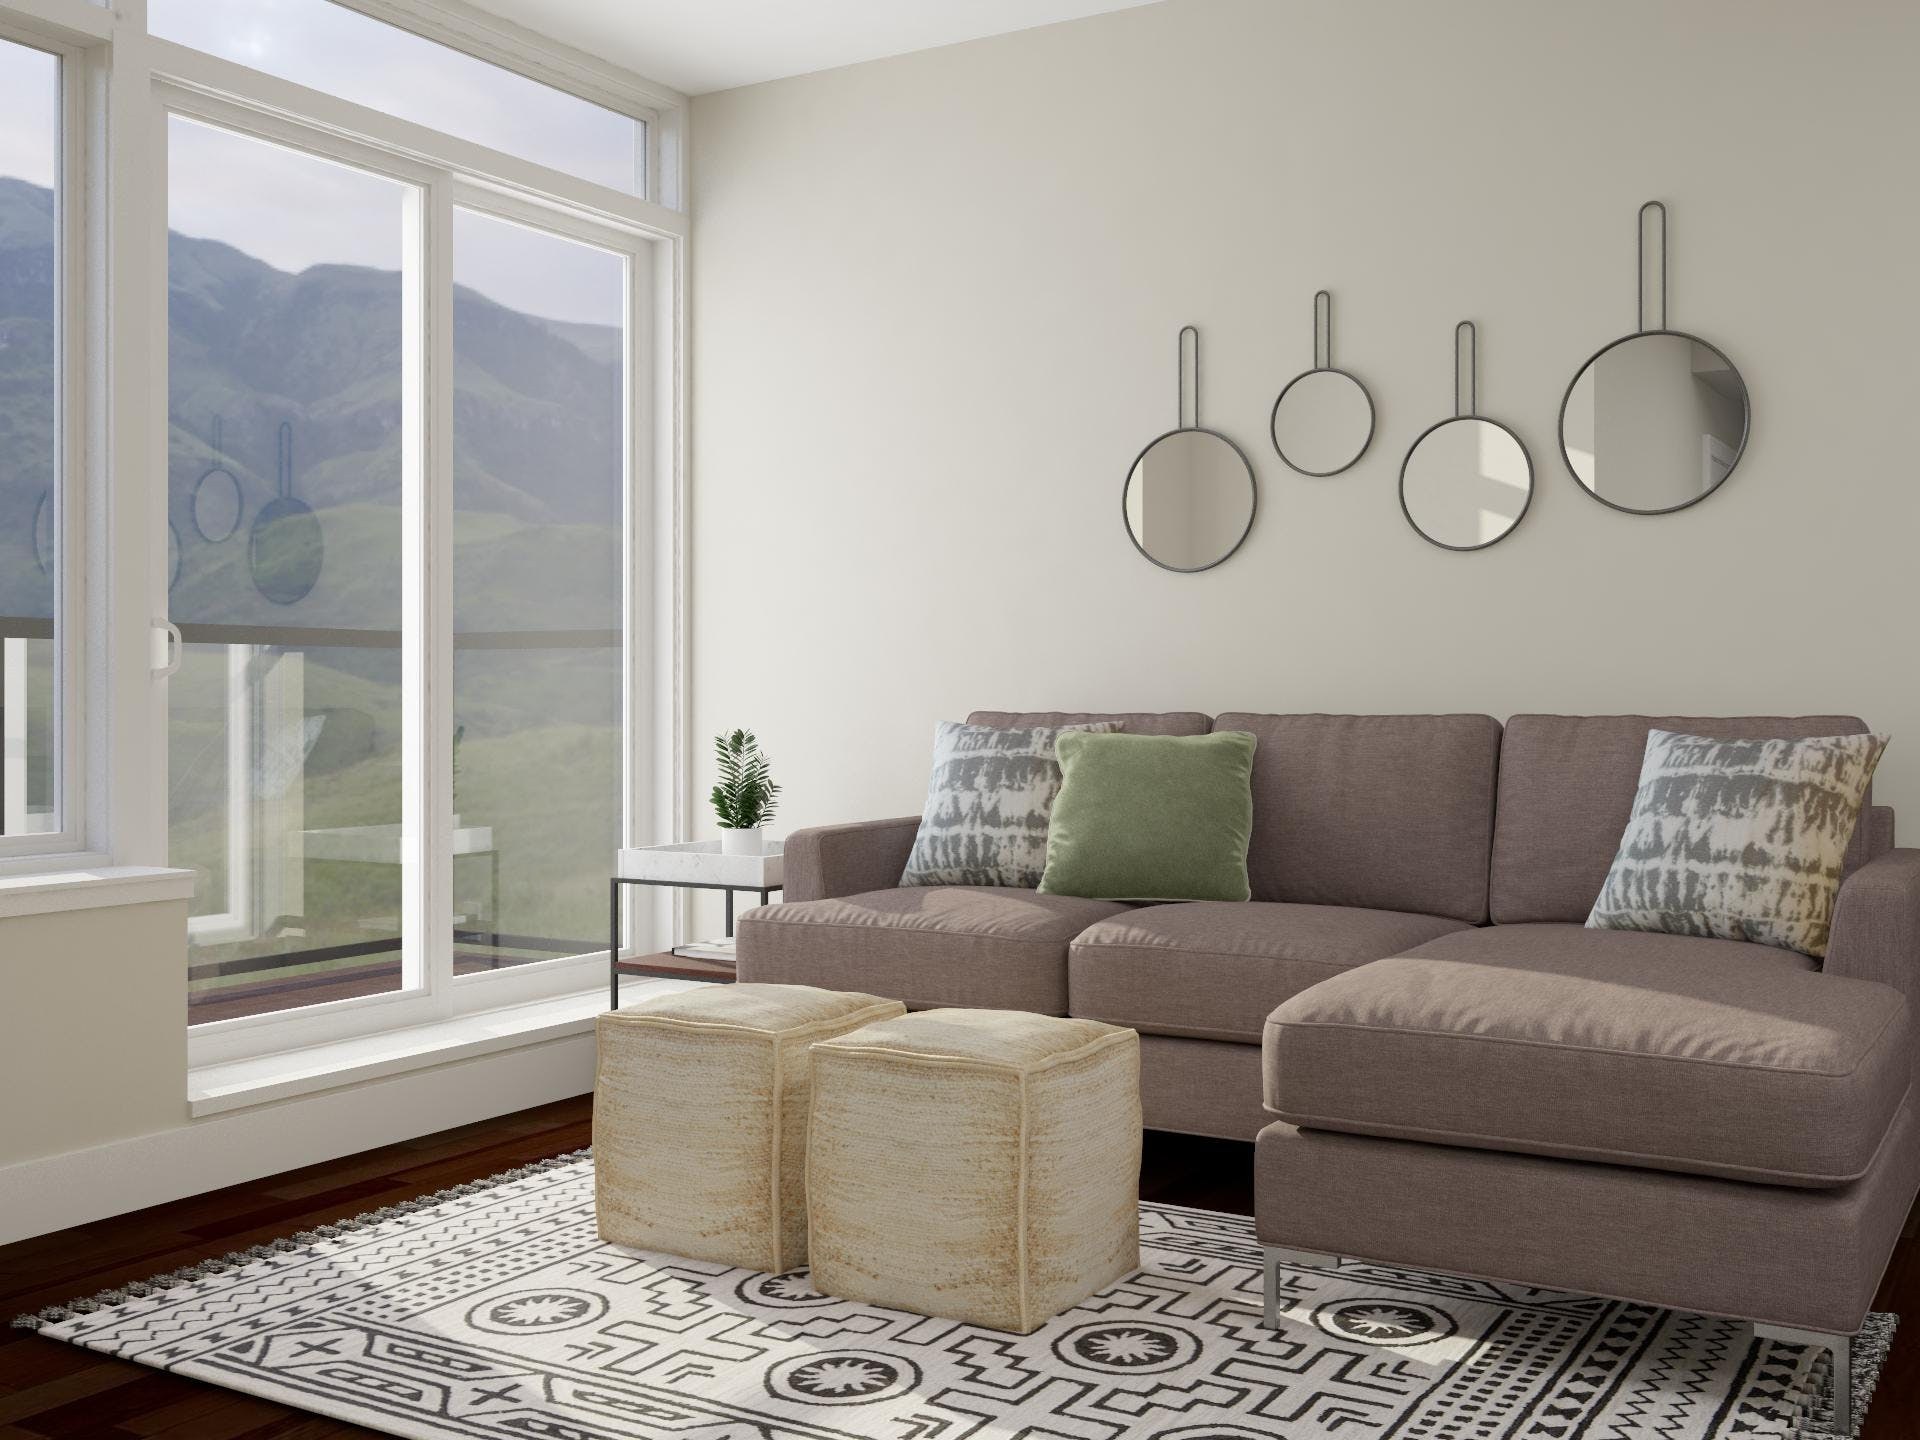 Minimalist Living Room With Dazzling Circular Mirror Accent Wall